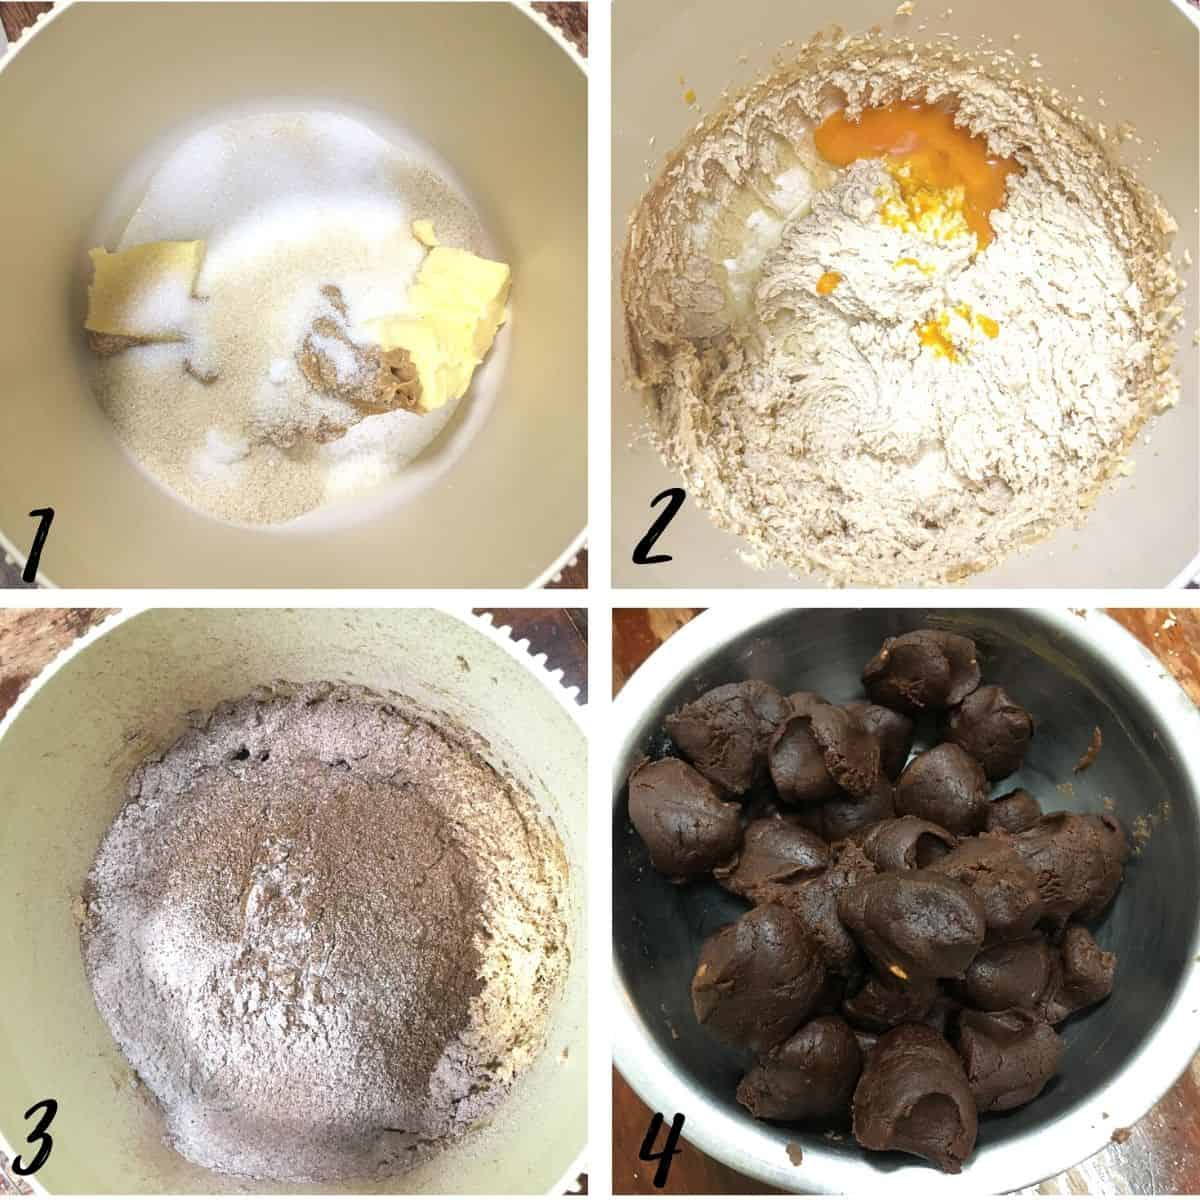 A poster of 4 images showing how to make chocolate cookie dough